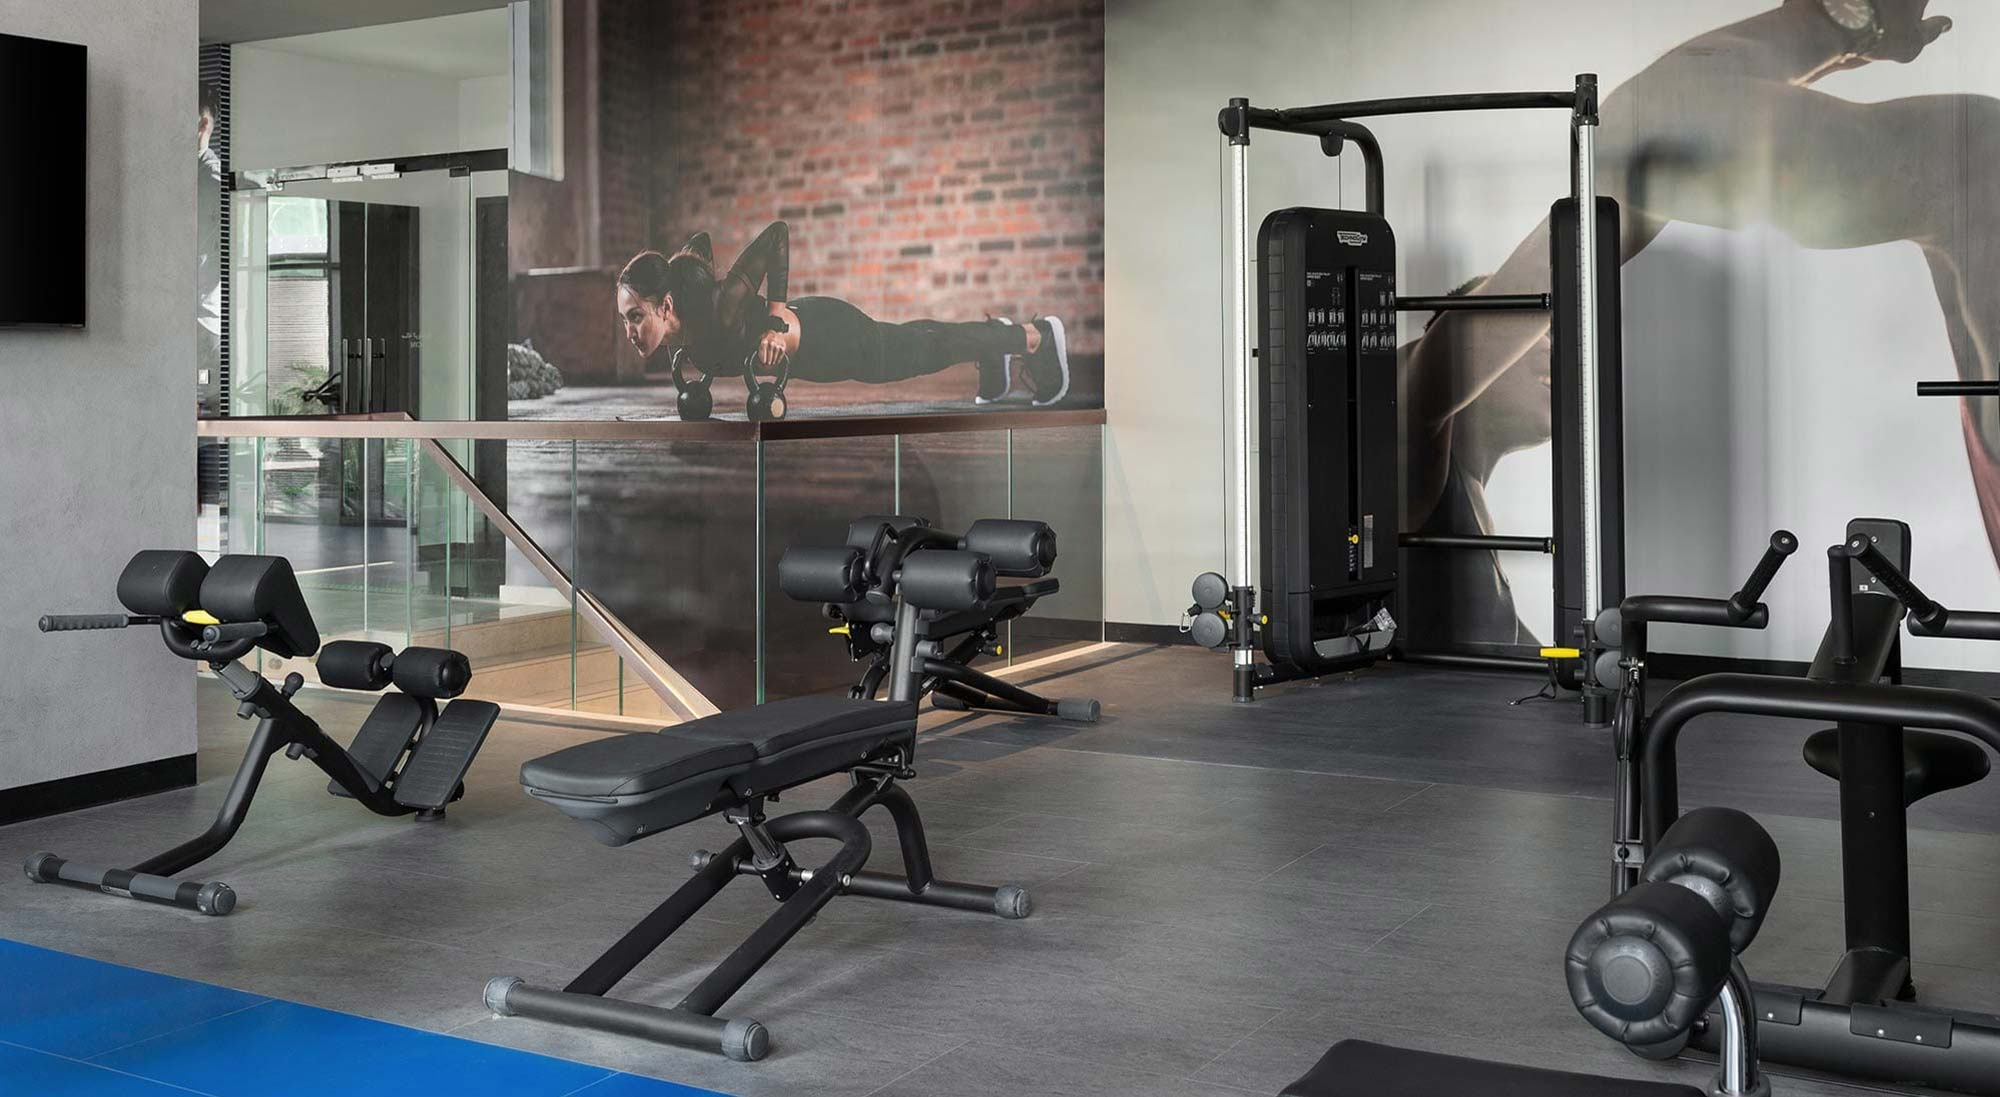 State-of-the-art gymnasium with the latest fitness equipment